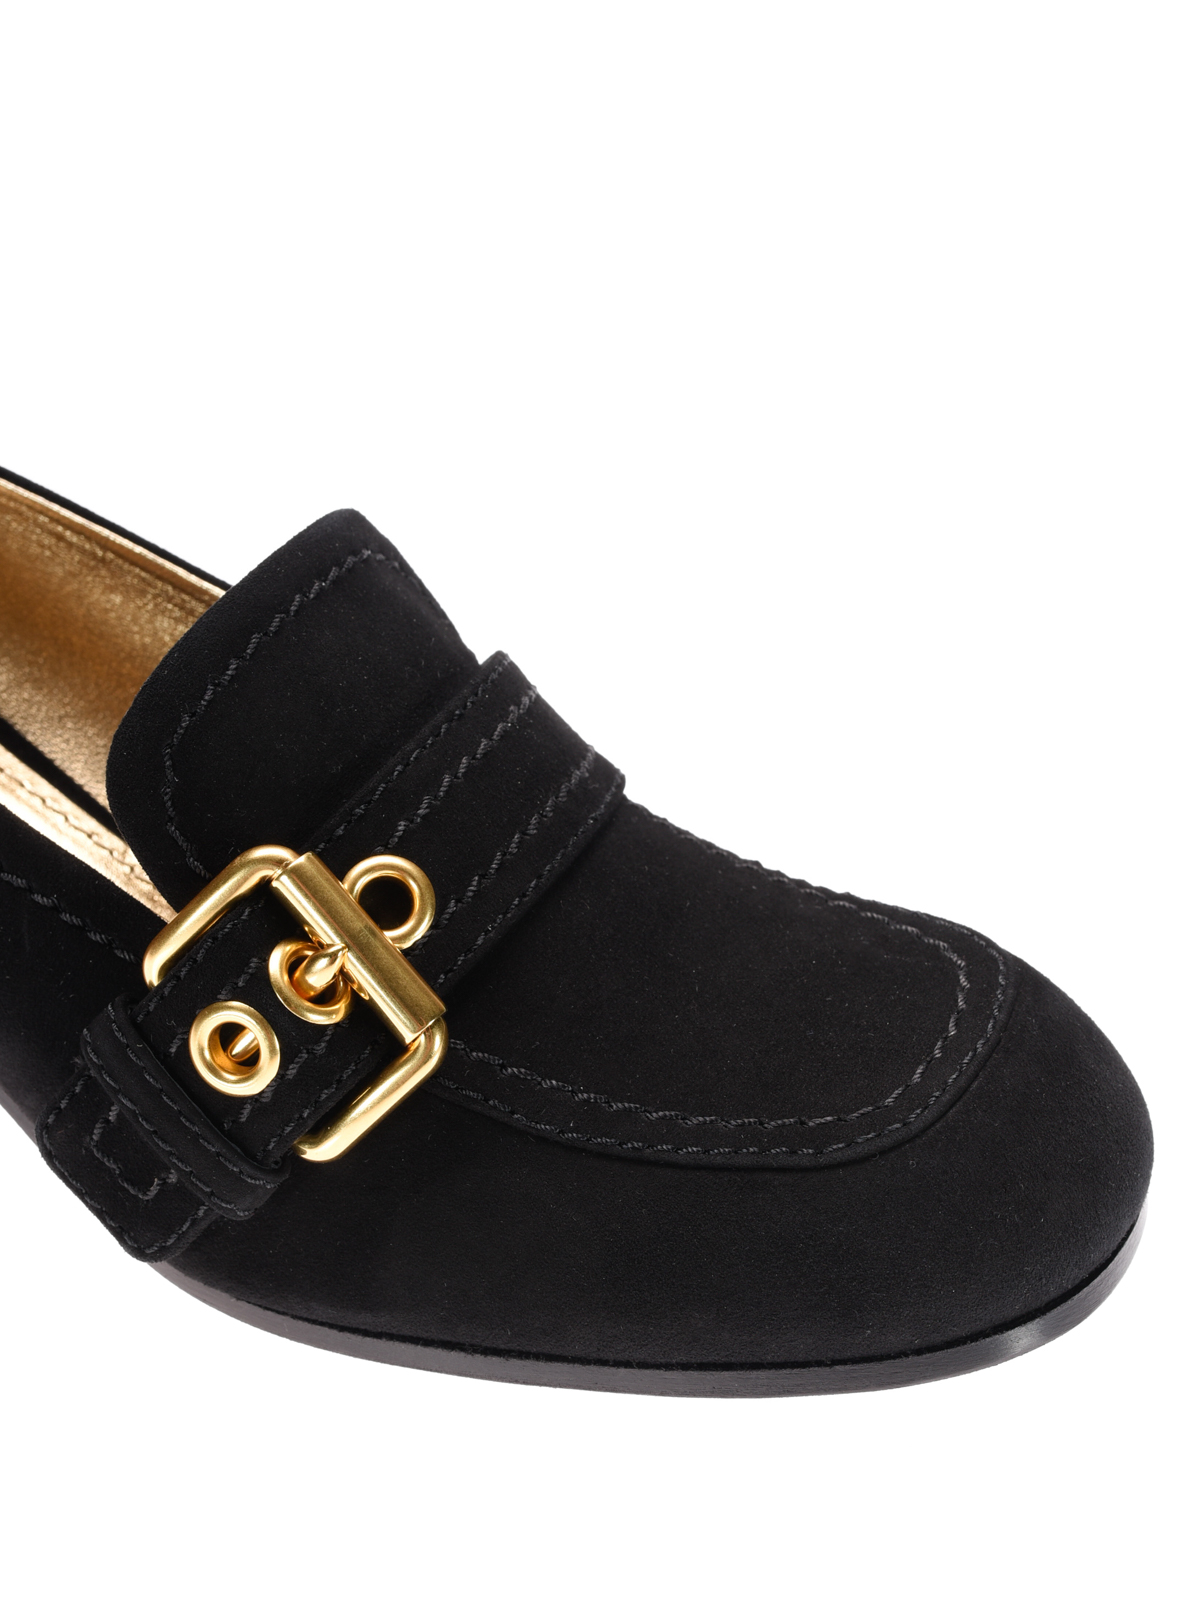 Car Shoe Suede Loafer Pumps affordable cheap online brand new unisex cheap price buy cheap hot sale largest supplier cheap online buy cheap best seller zgVyIDXP